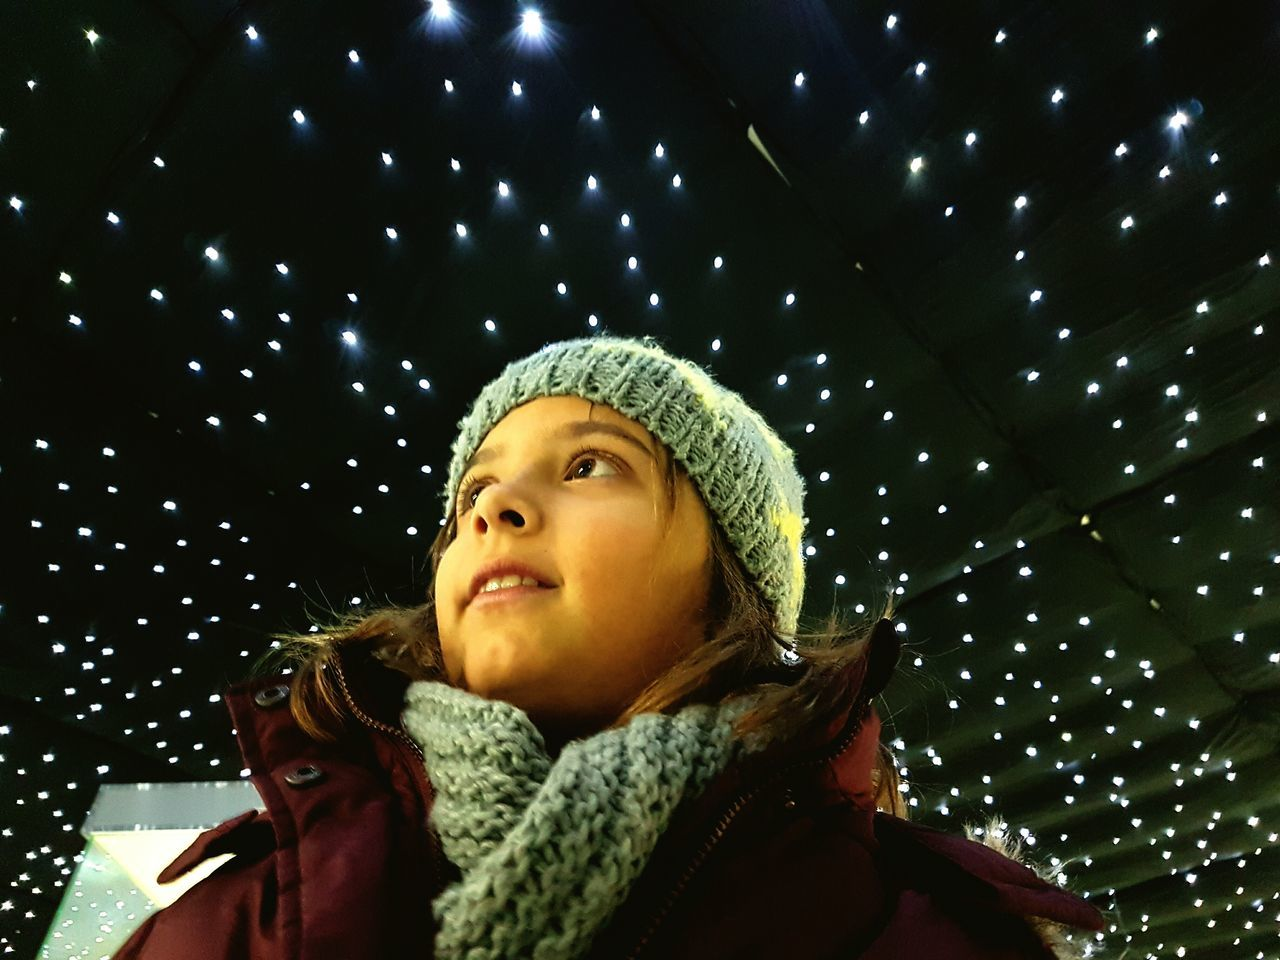 Night Warm Clothing Space Star - Space Astronomy One Person Kidsphotography Daugther My Angel My Angel Daughter♡ First First Eyeem Photo Samsung Galaxy S7 Edge FirstEyeEmPic The Photographer